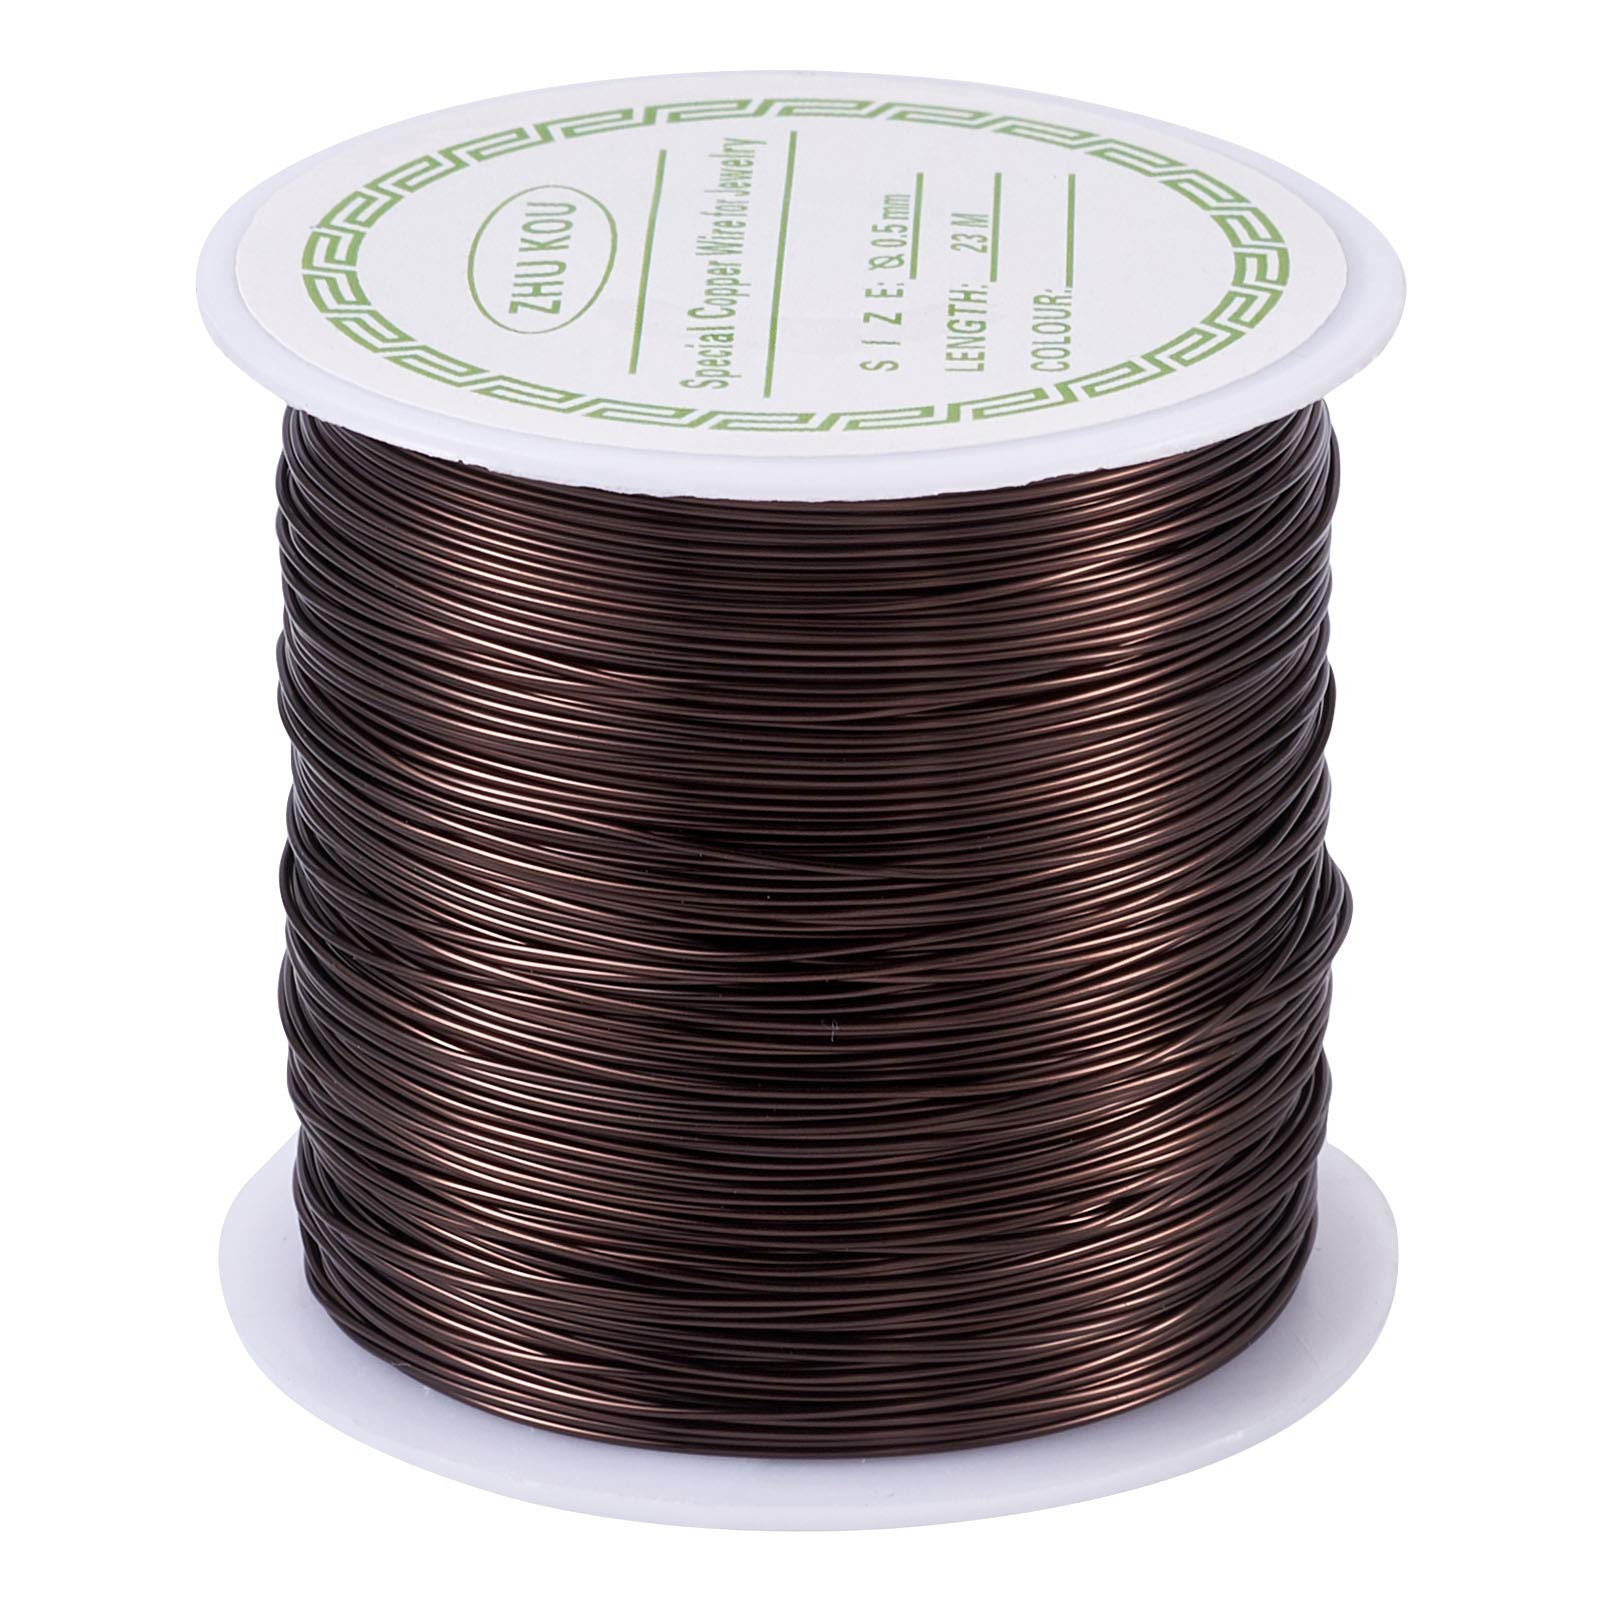 Pandahall 75.5 Feet Tarnish Resistant Copper Wire 24 Gauge Jewelry Beading Craft Wire for Jewelry Making (Saddle Brown)